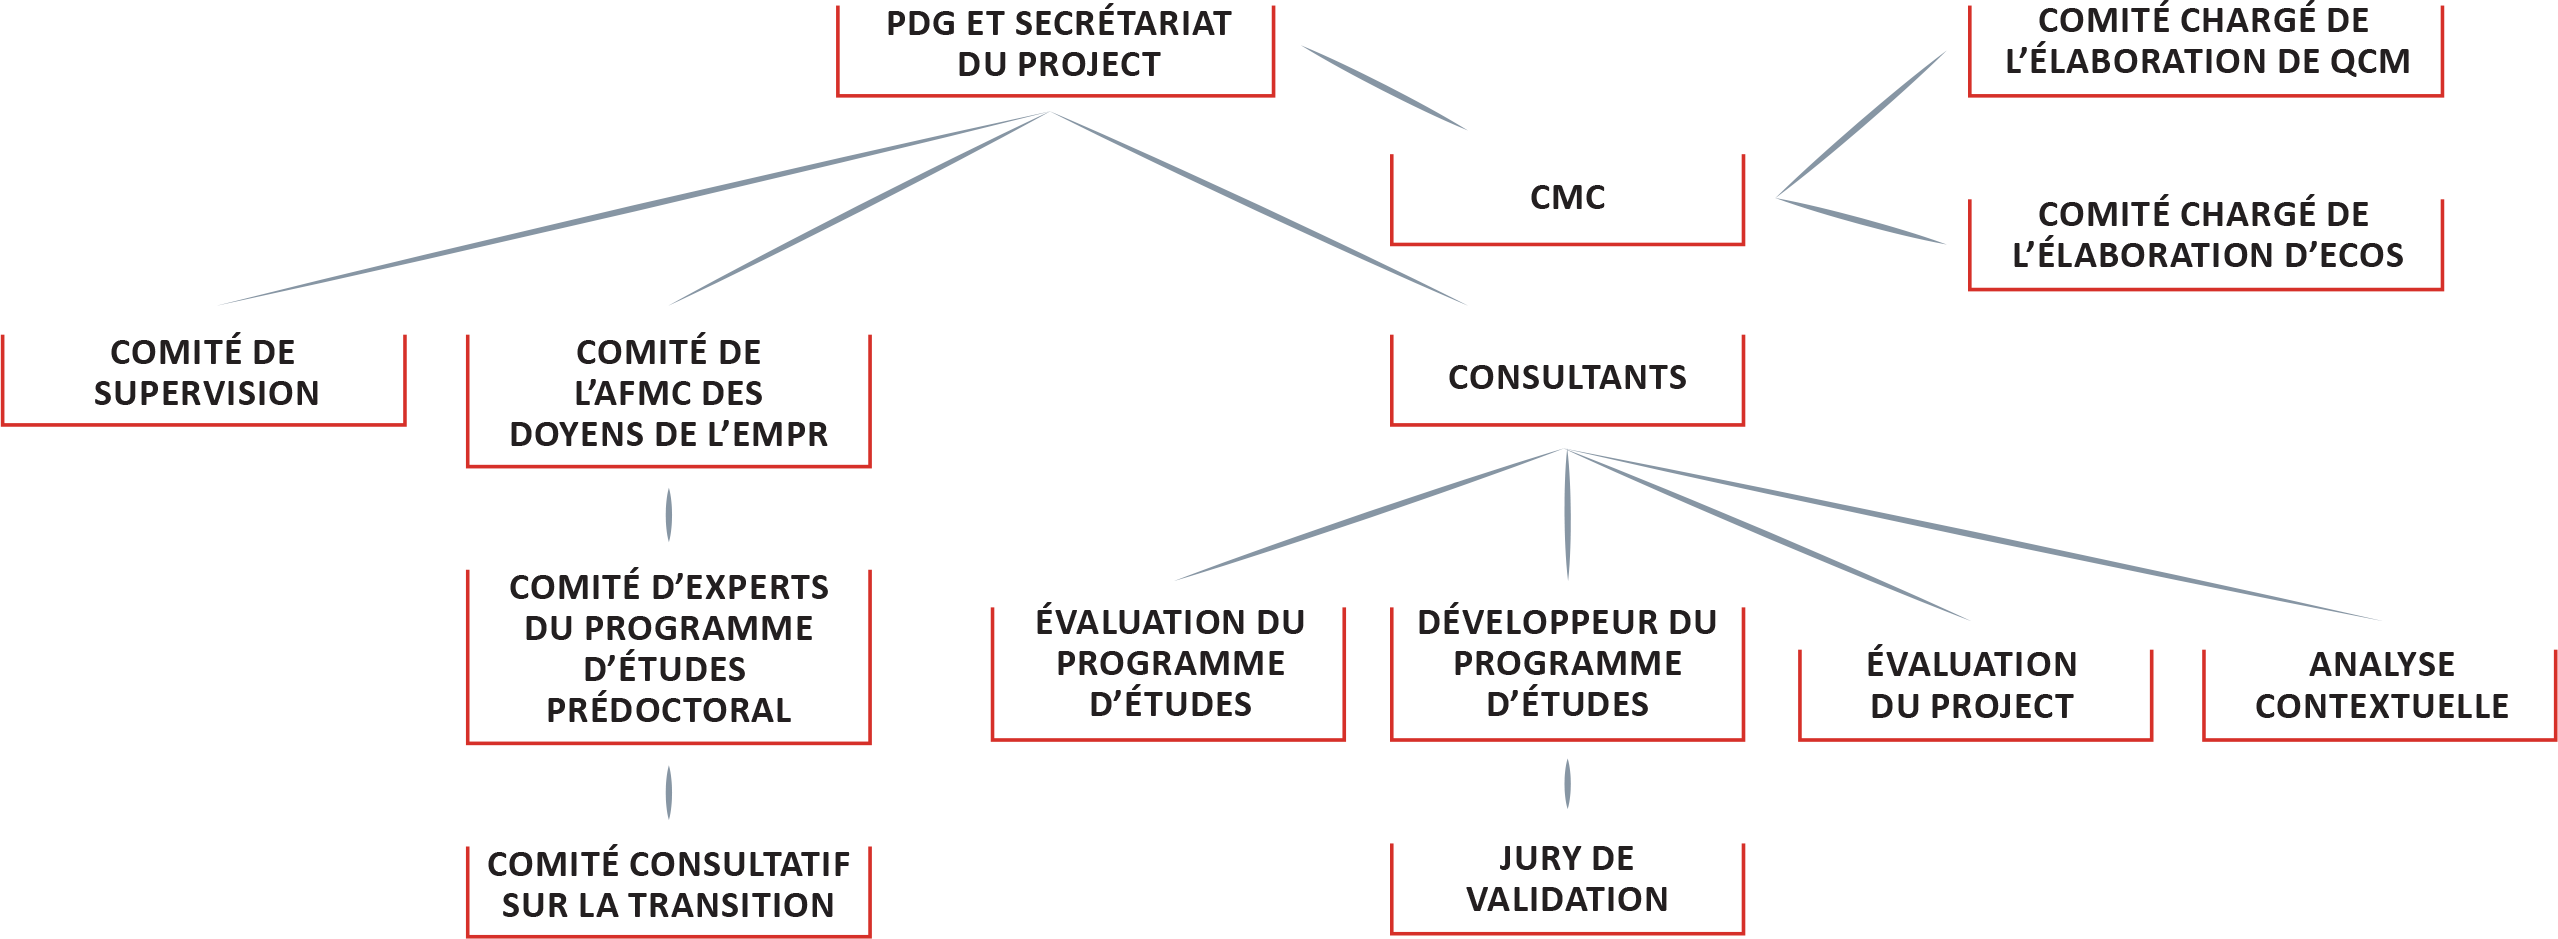 Diagram showing opioid project governance structure